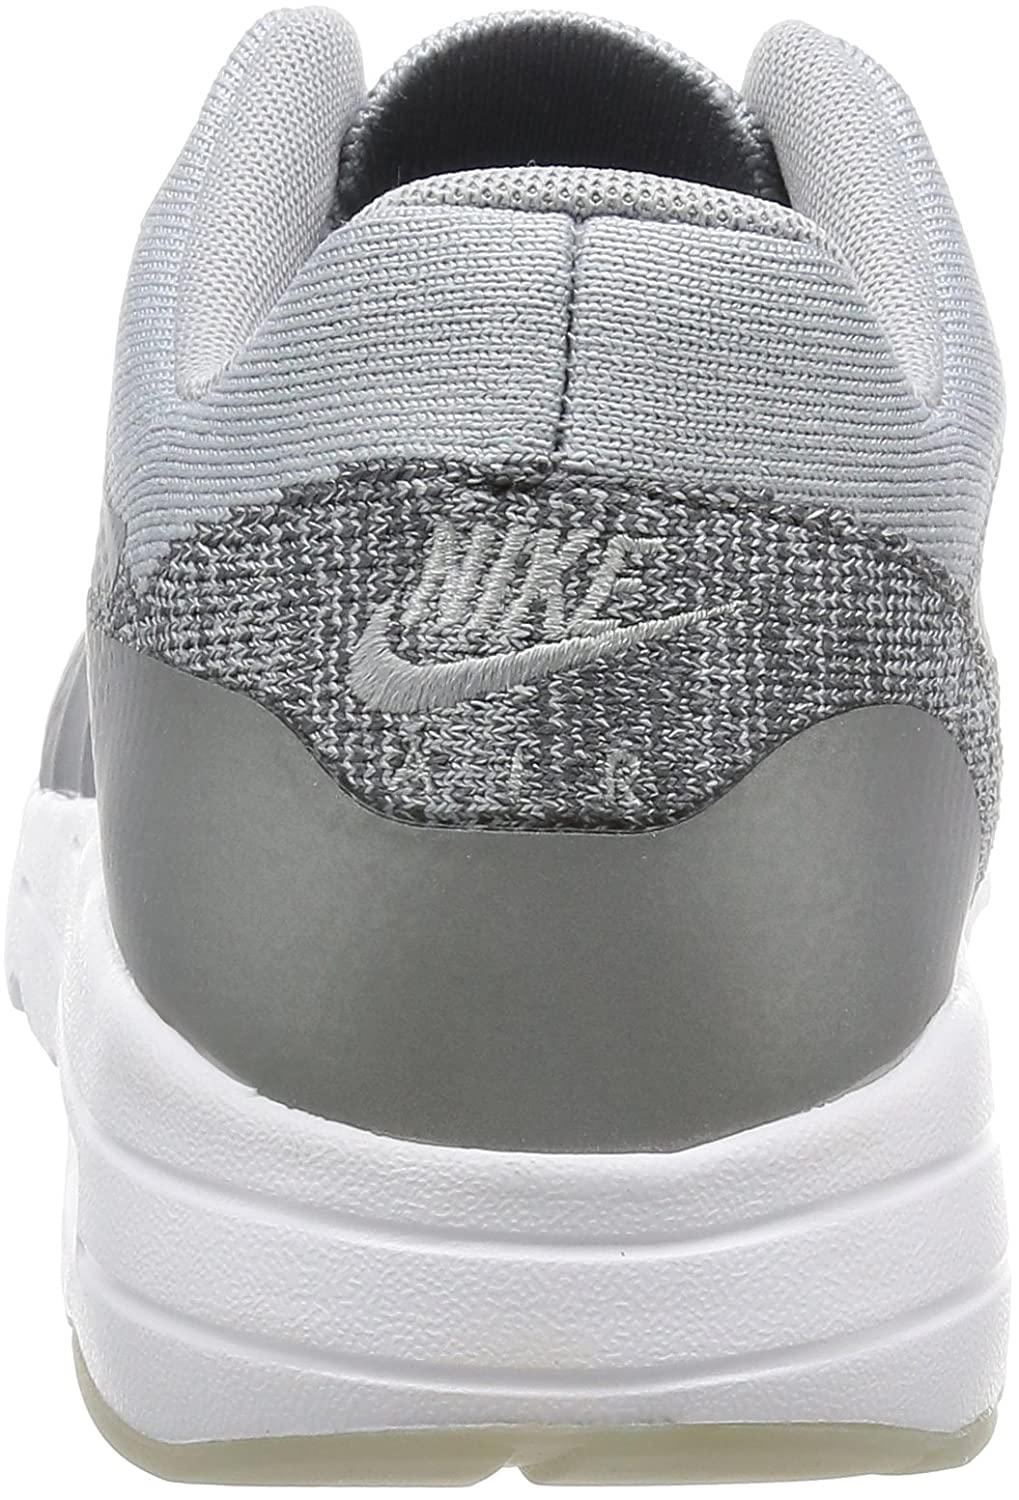 air max one flyknit